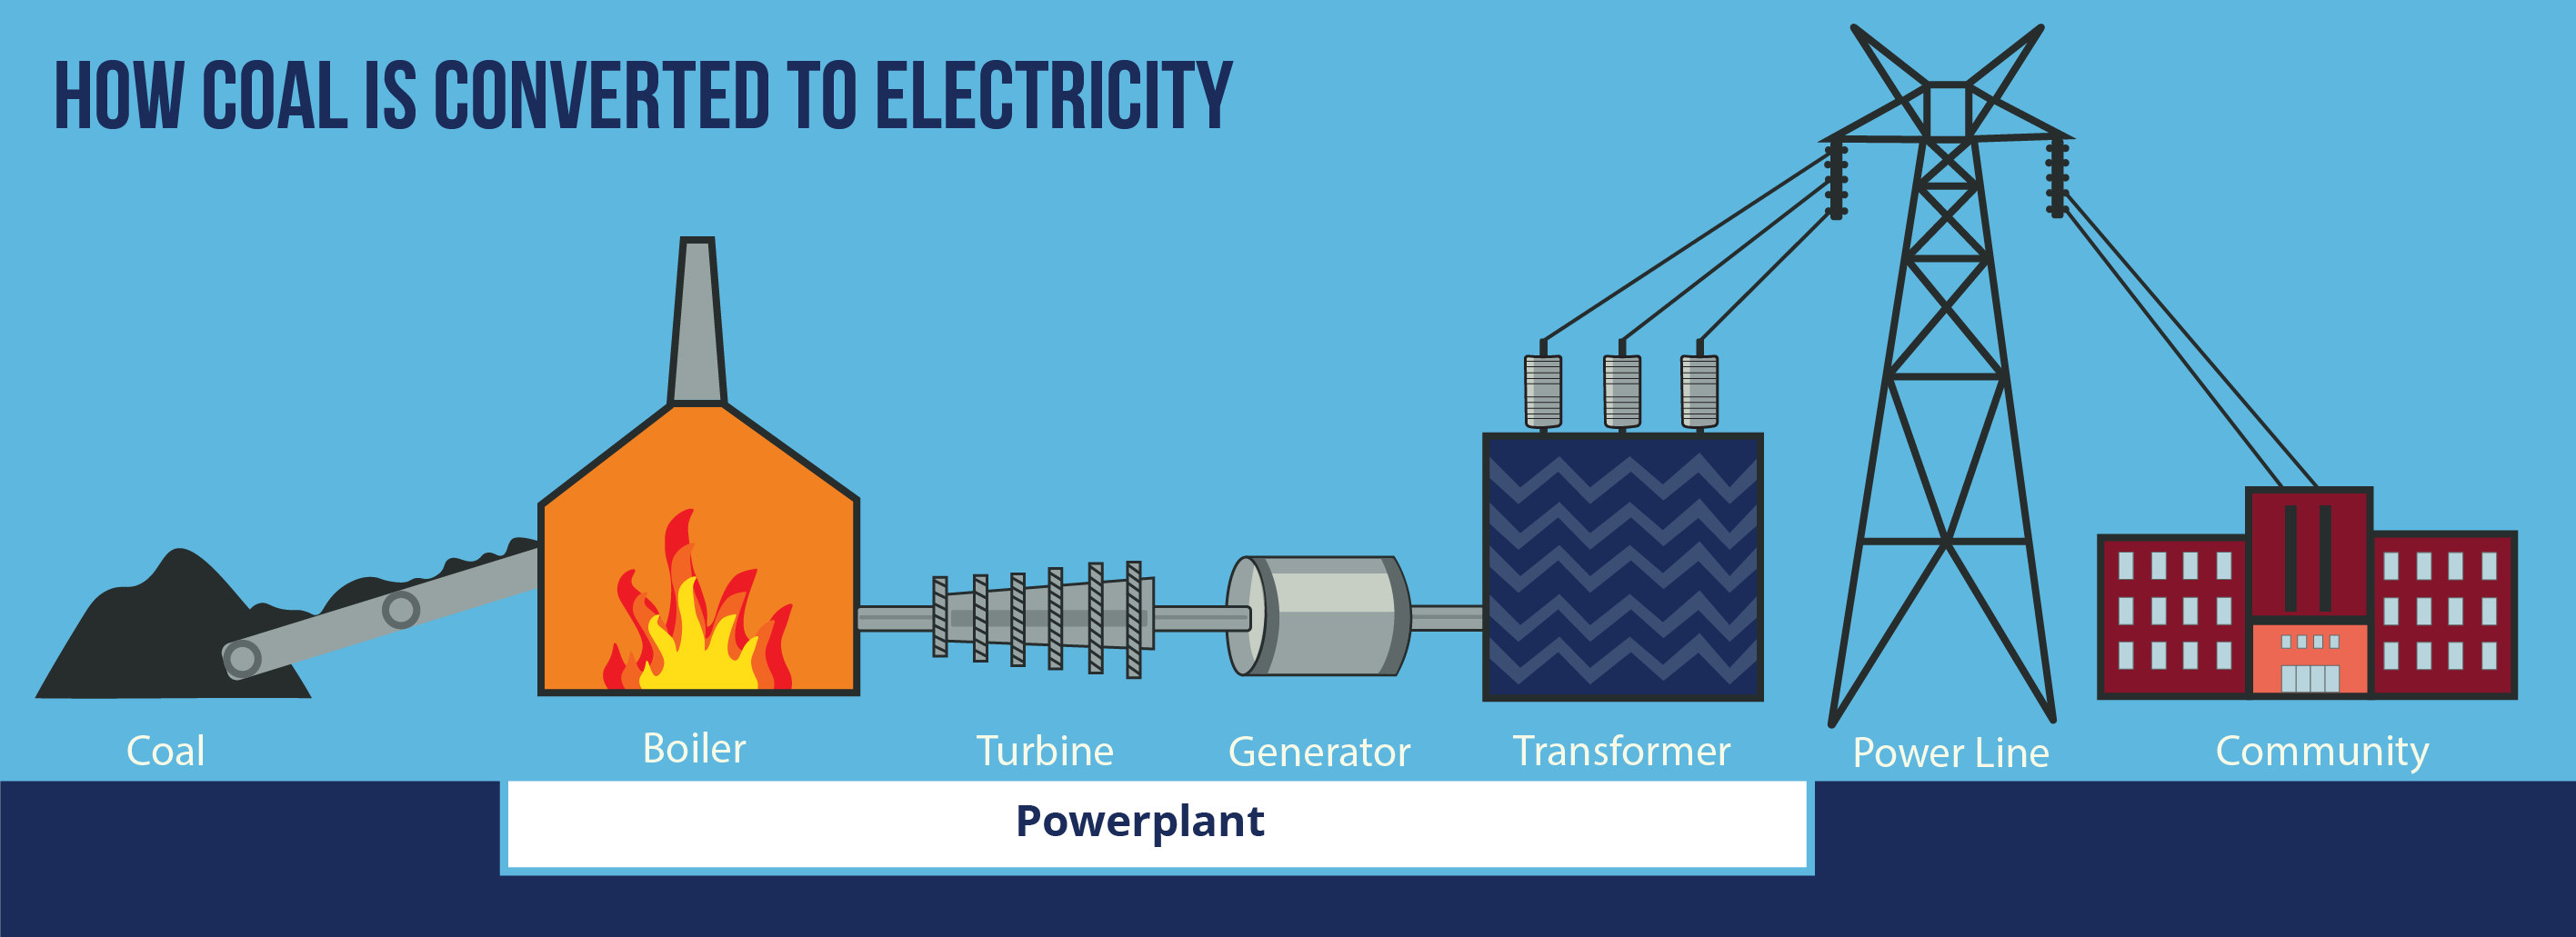 HOW COAL IS CONVERTED TO ELECTRICITY. COAL, BOILER, TURBINE, GENERATOR, TRANSFORMER, POWERLINE, COMMUNITY, POWERPLANT